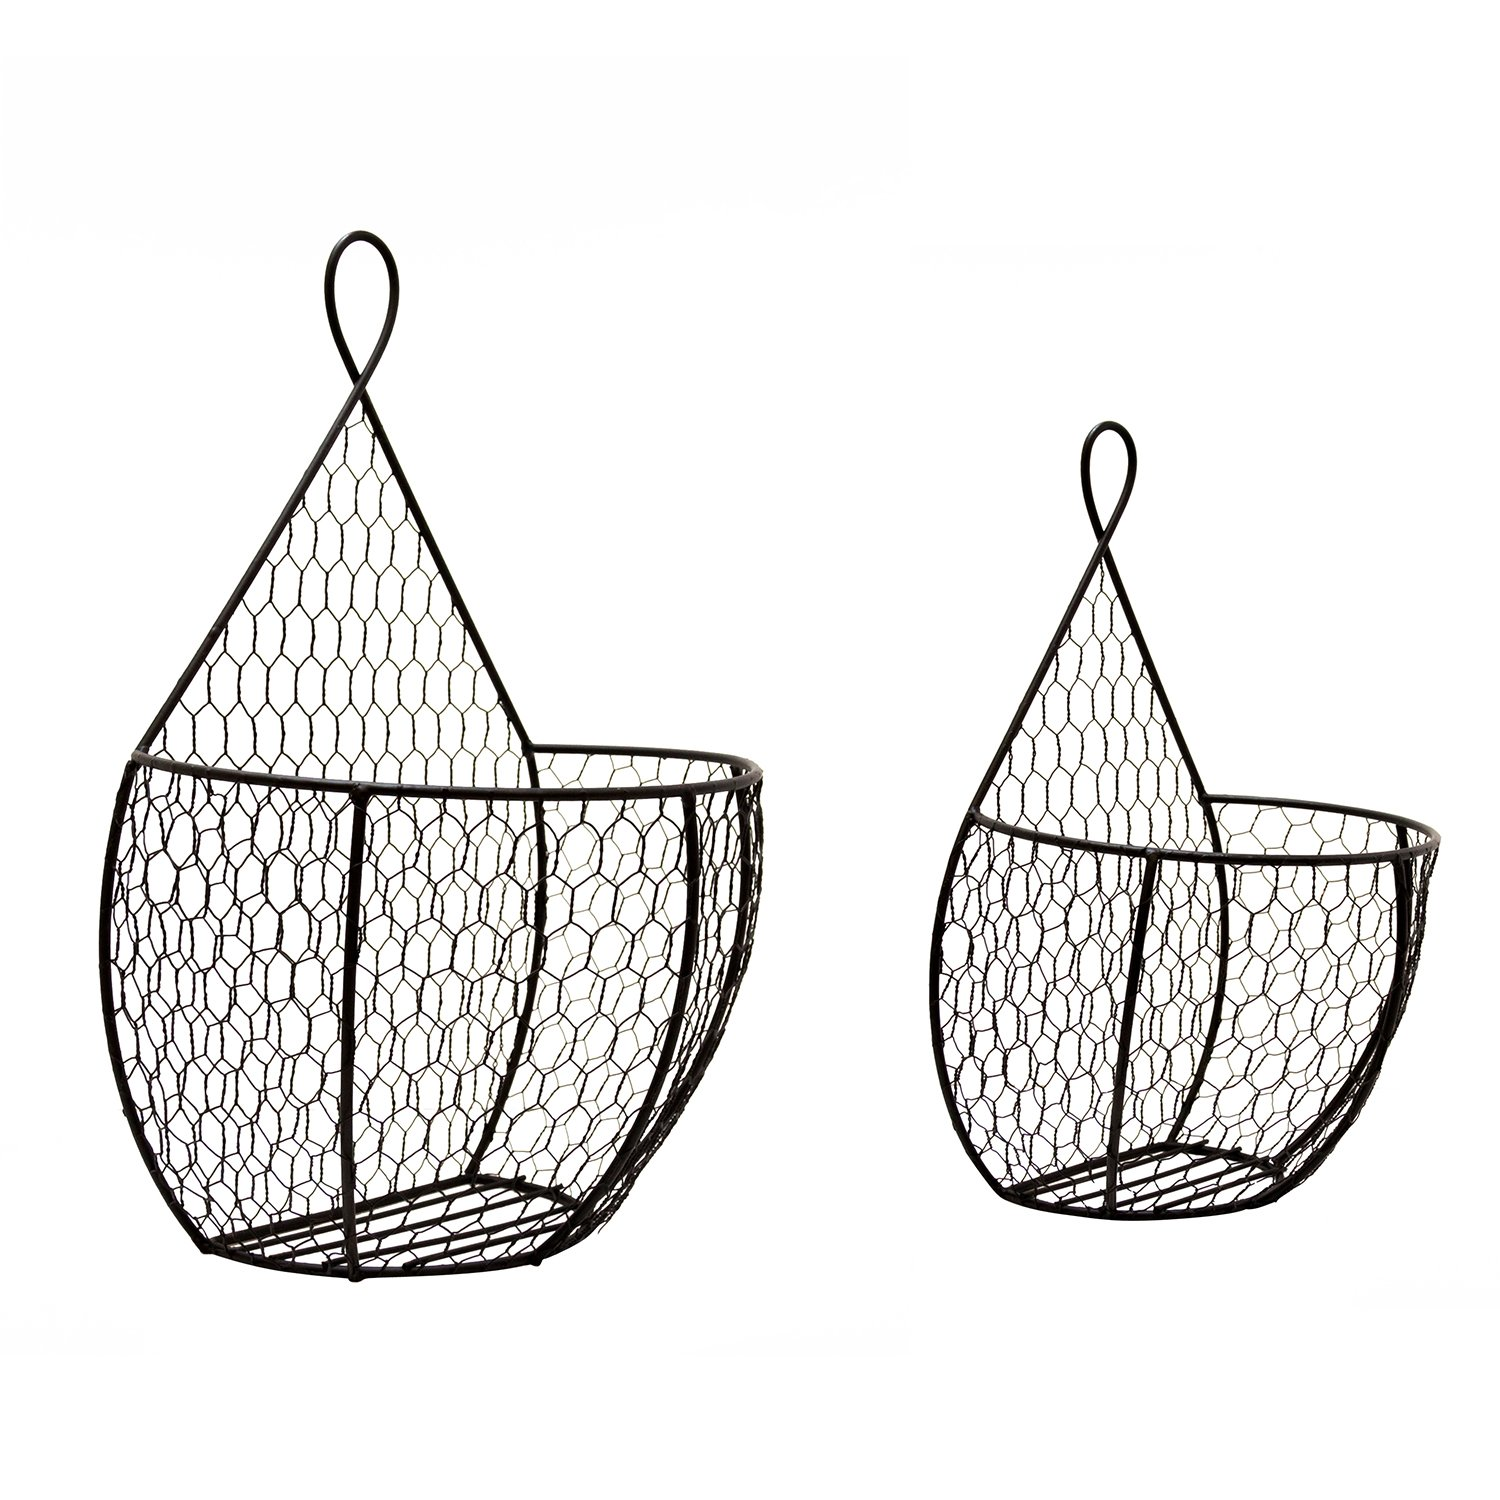 Useful UH-WB234 Double Hanging Display Storage Baskets - Pair of Wall Mount Baskets 1 Large 1 Small Wall Hanging Units for Flowers, Fruits and Veggies, Decorations, and More